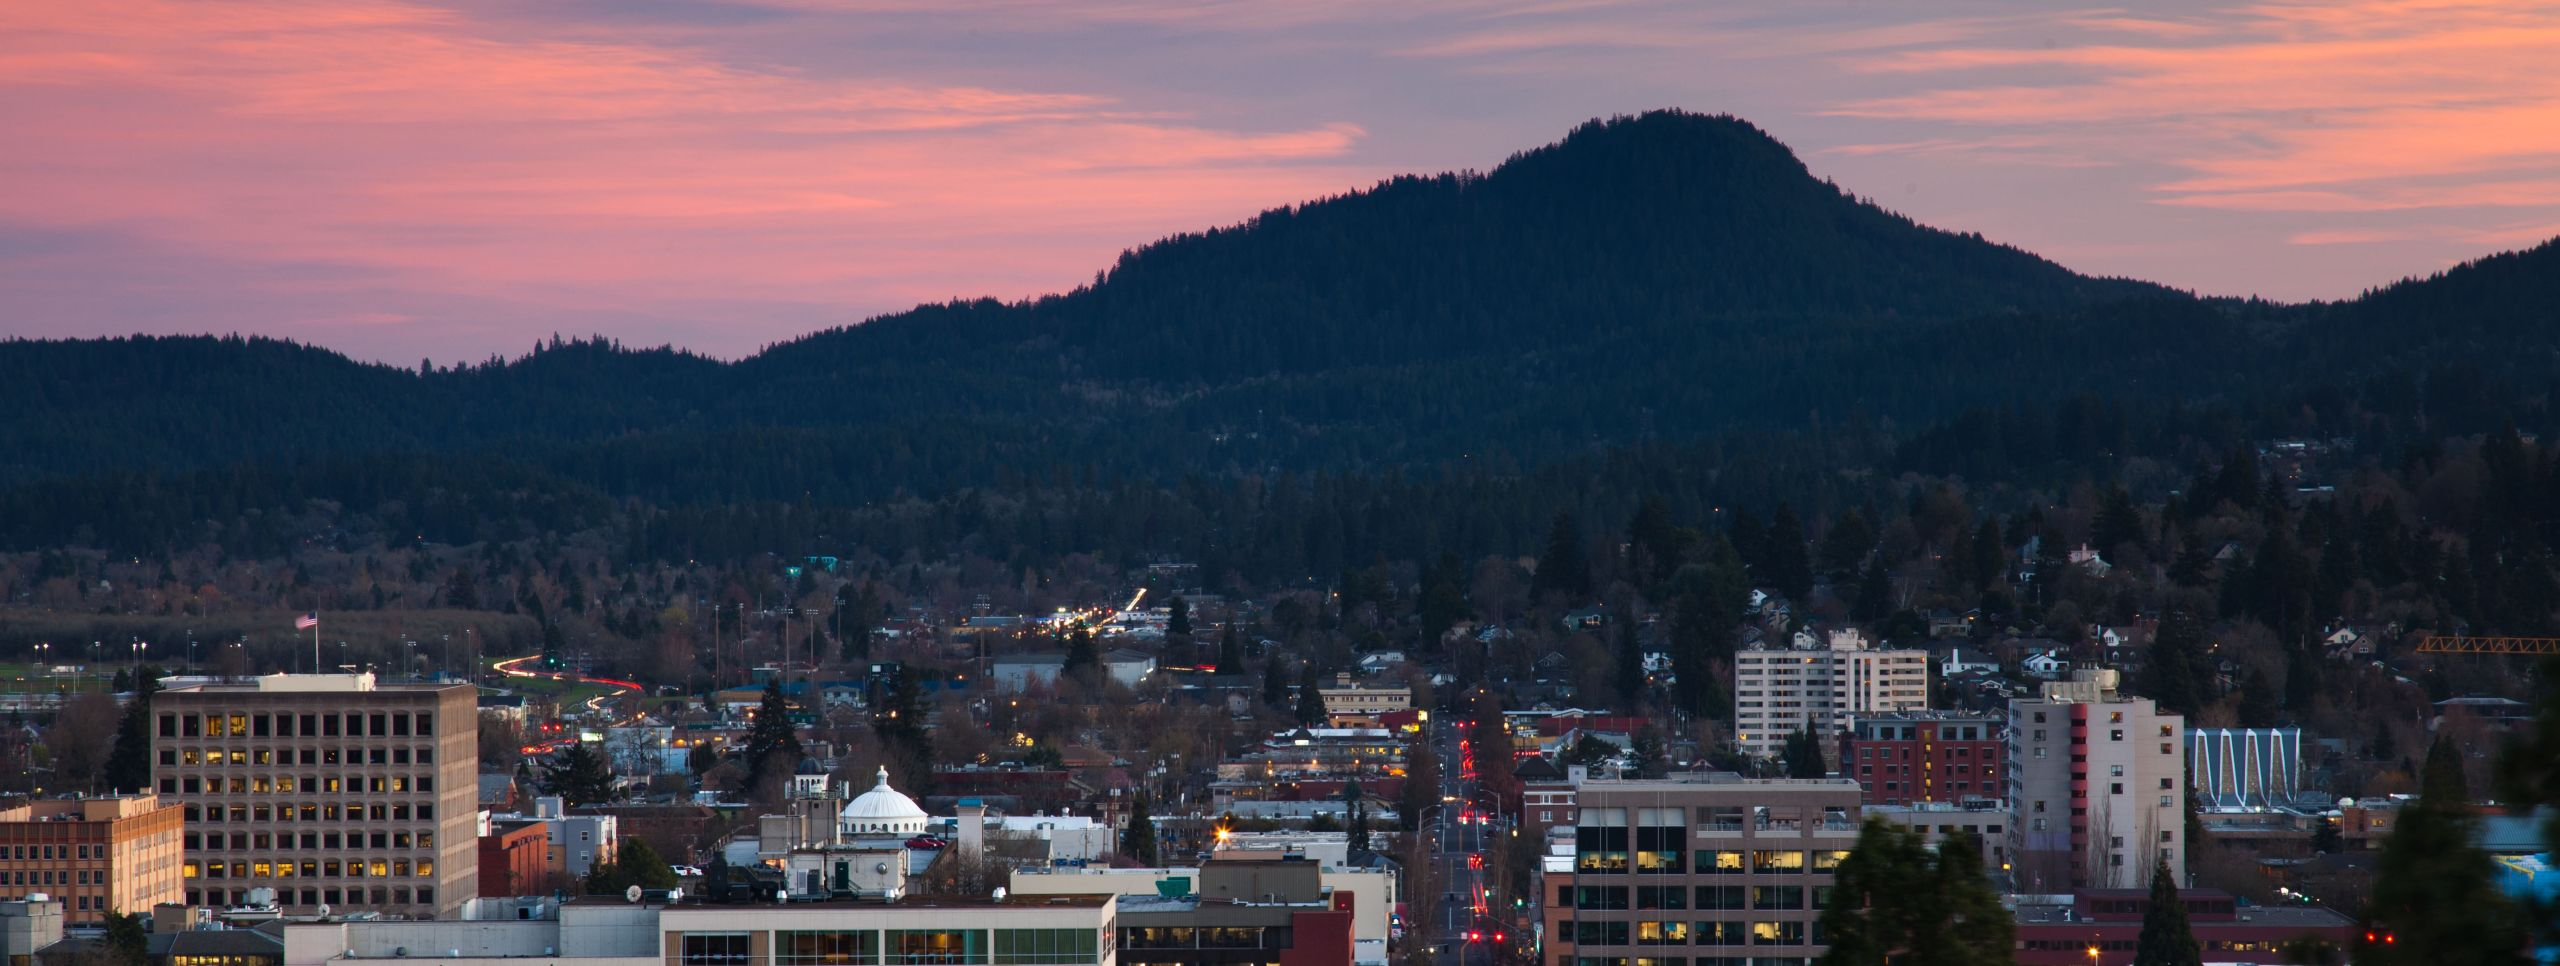 Downtown View of Eugene at dusk